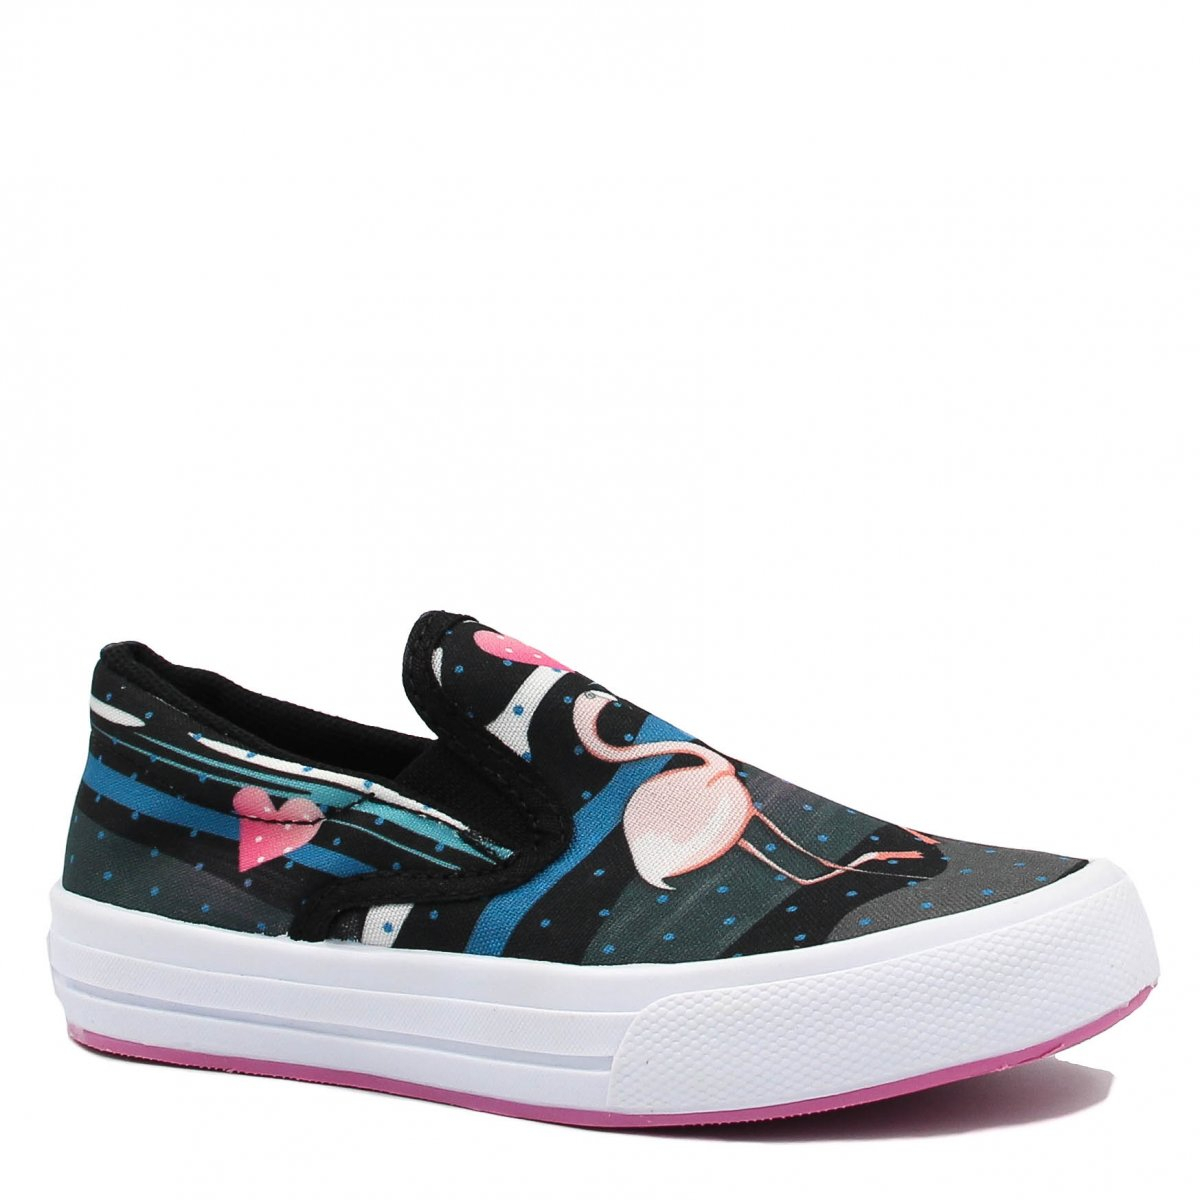 Tênis Infantil Zariff Shoes Slip On Flamingos Preto